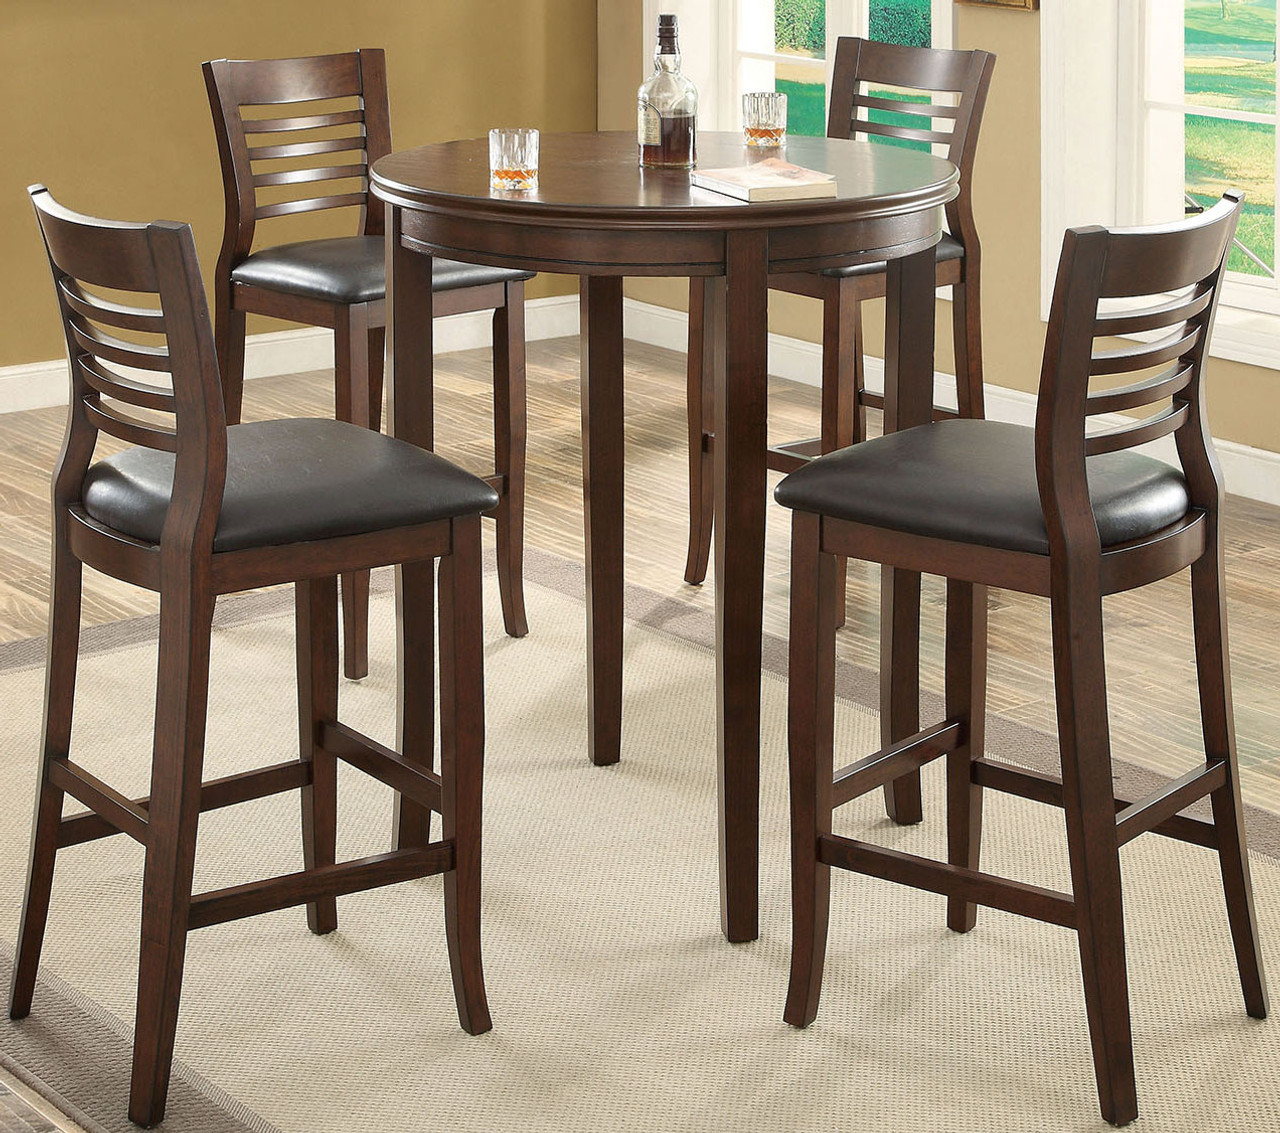 5 Piece Counter Height Dining Set Warm Cherry Finish